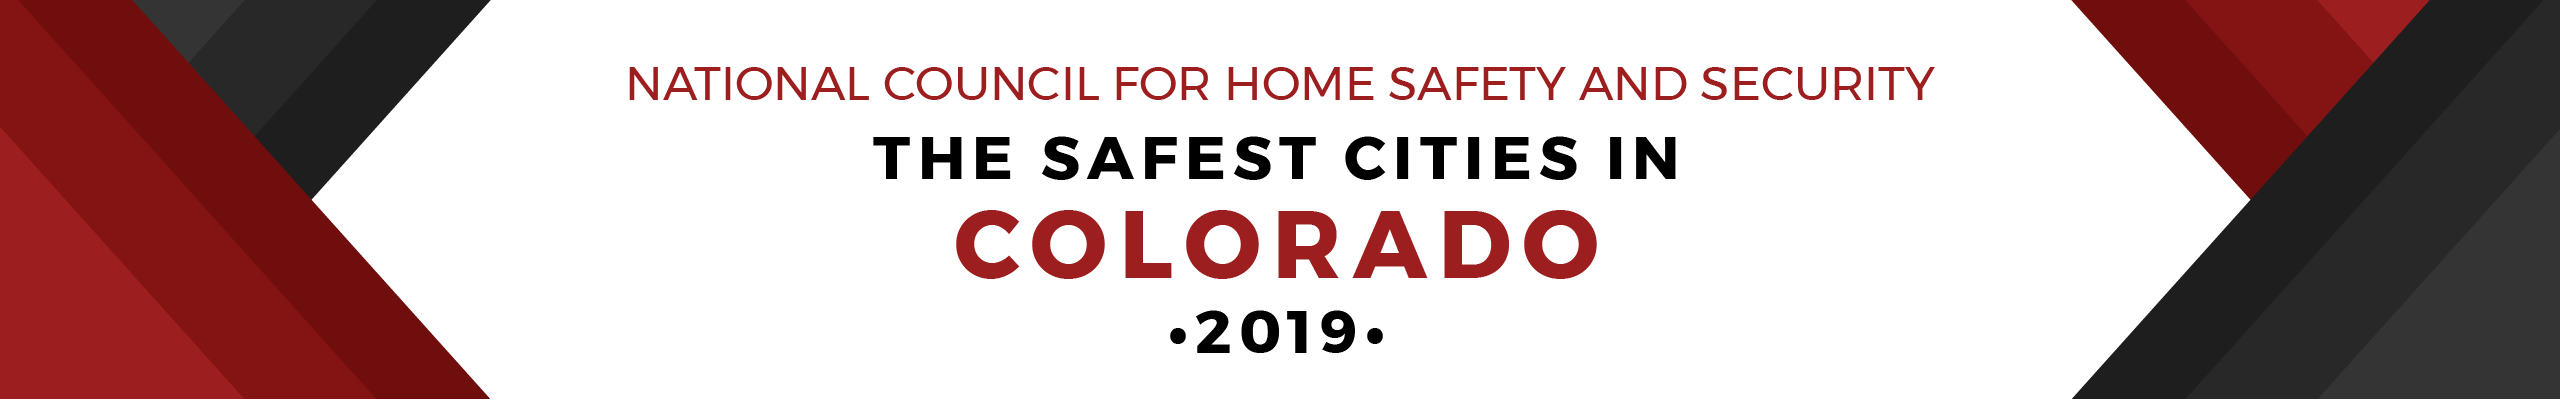 Safest Cities Colorado - header